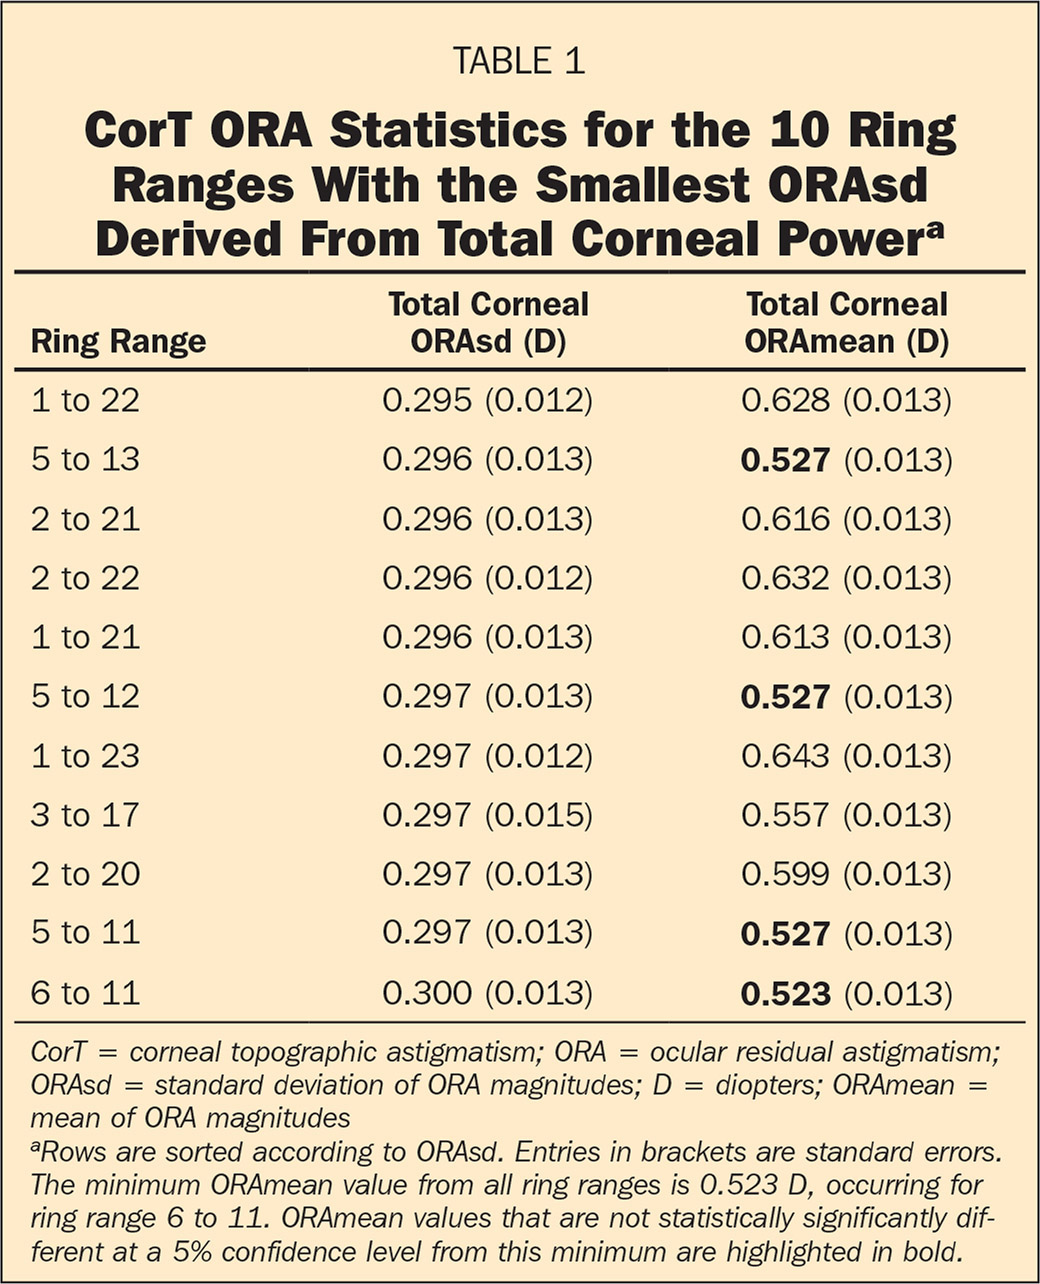 CorT ORA Statistics for the 10 Ring Ranges With the Smallest ORAsd Derived From Total Corneal Powera